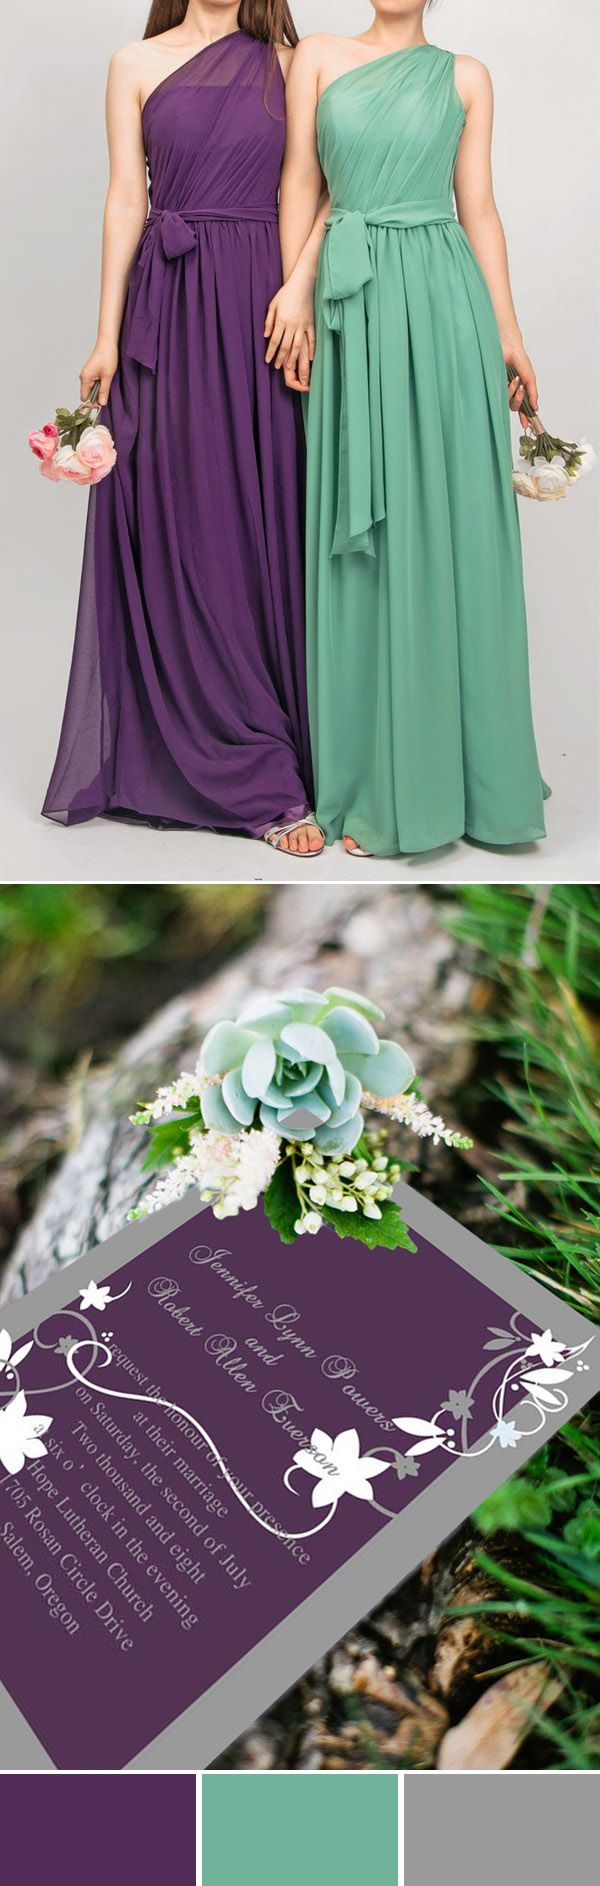 Best 25+ Purple and green wedding ideas on Pinterest | Lavender ...